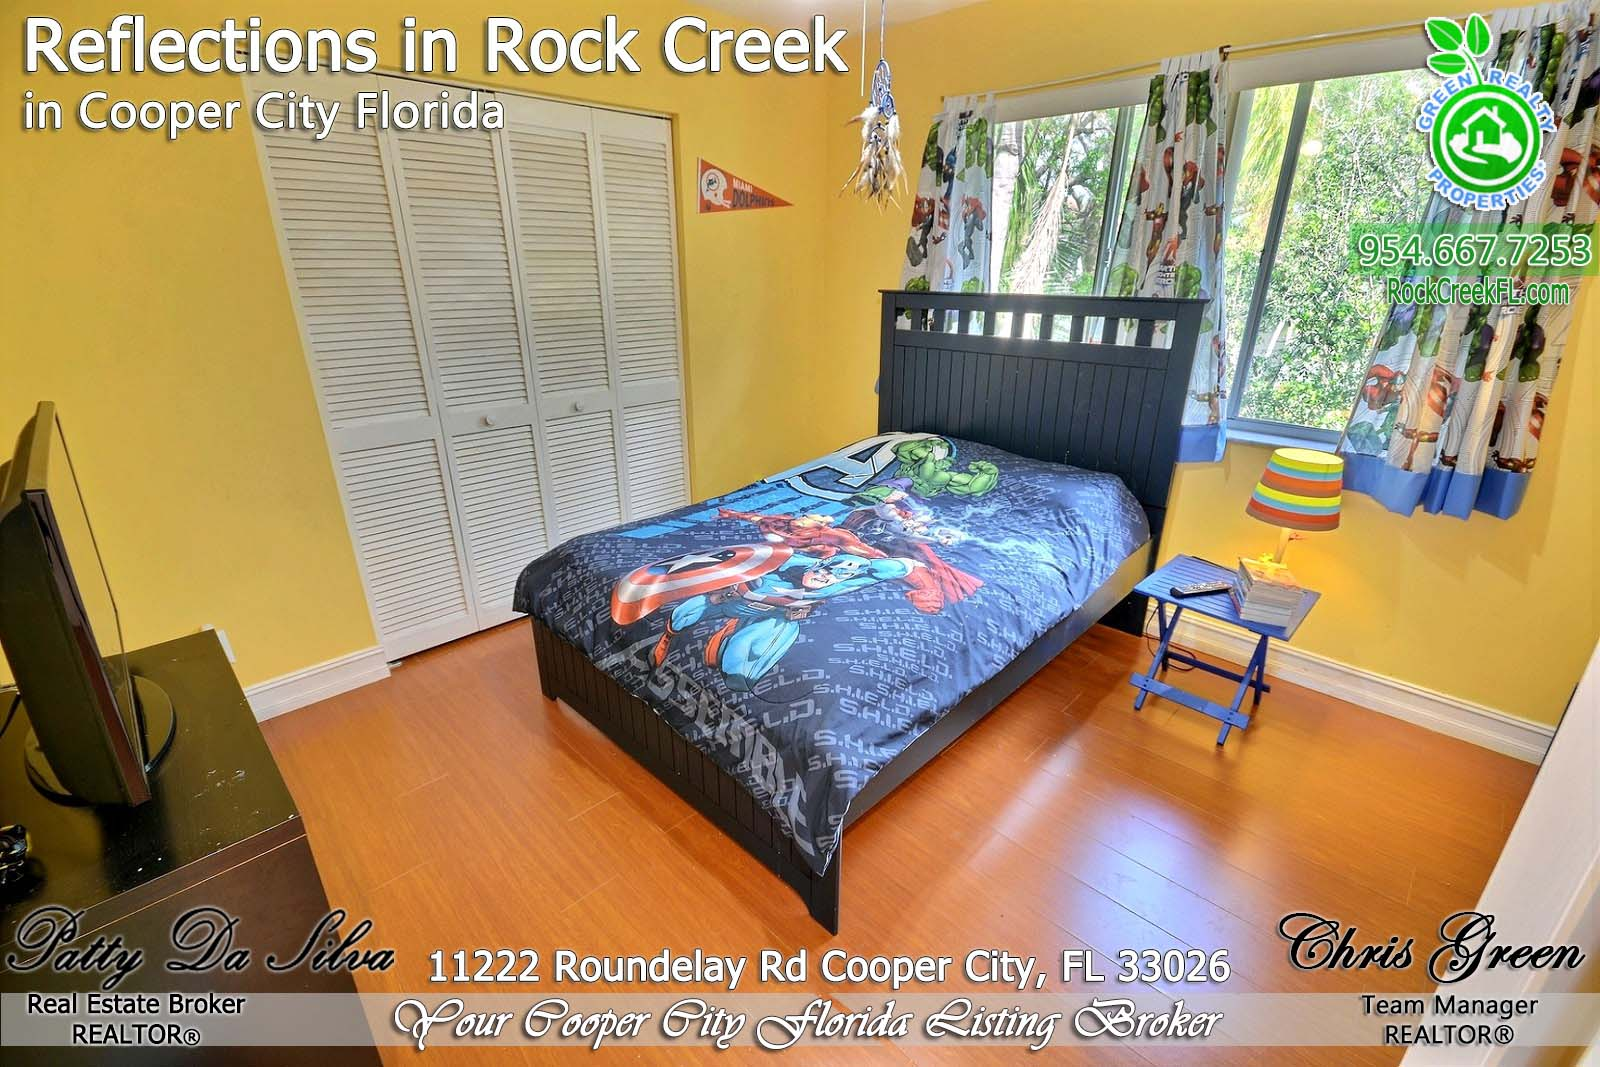 Cooper City Homes For Sale - Reflections in Rock Creek Homes Fo Sale (28)